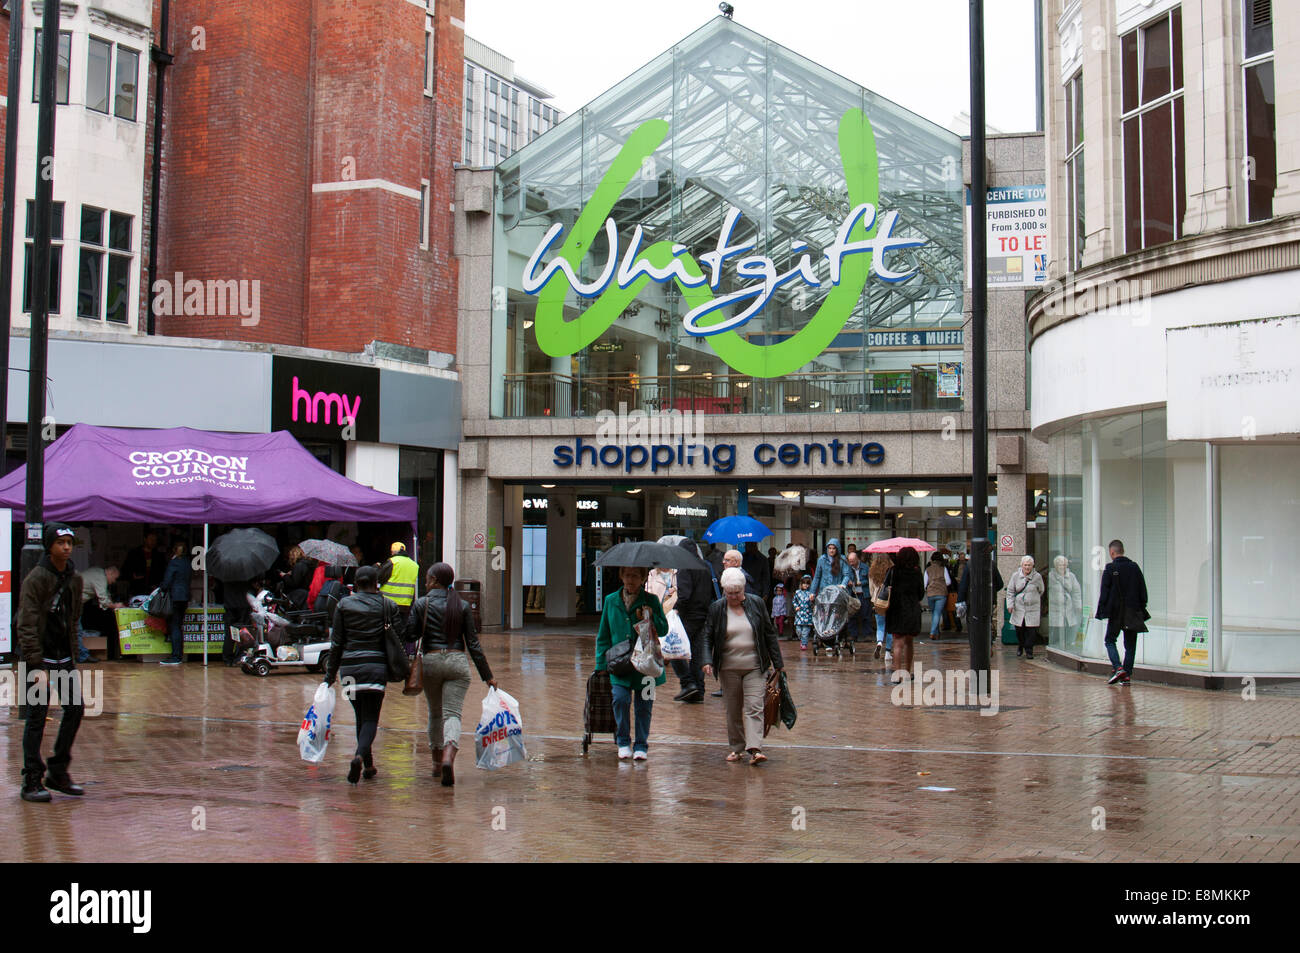 The Whitgift Shopping Centre, Croydon, South London, UK - Stock Image